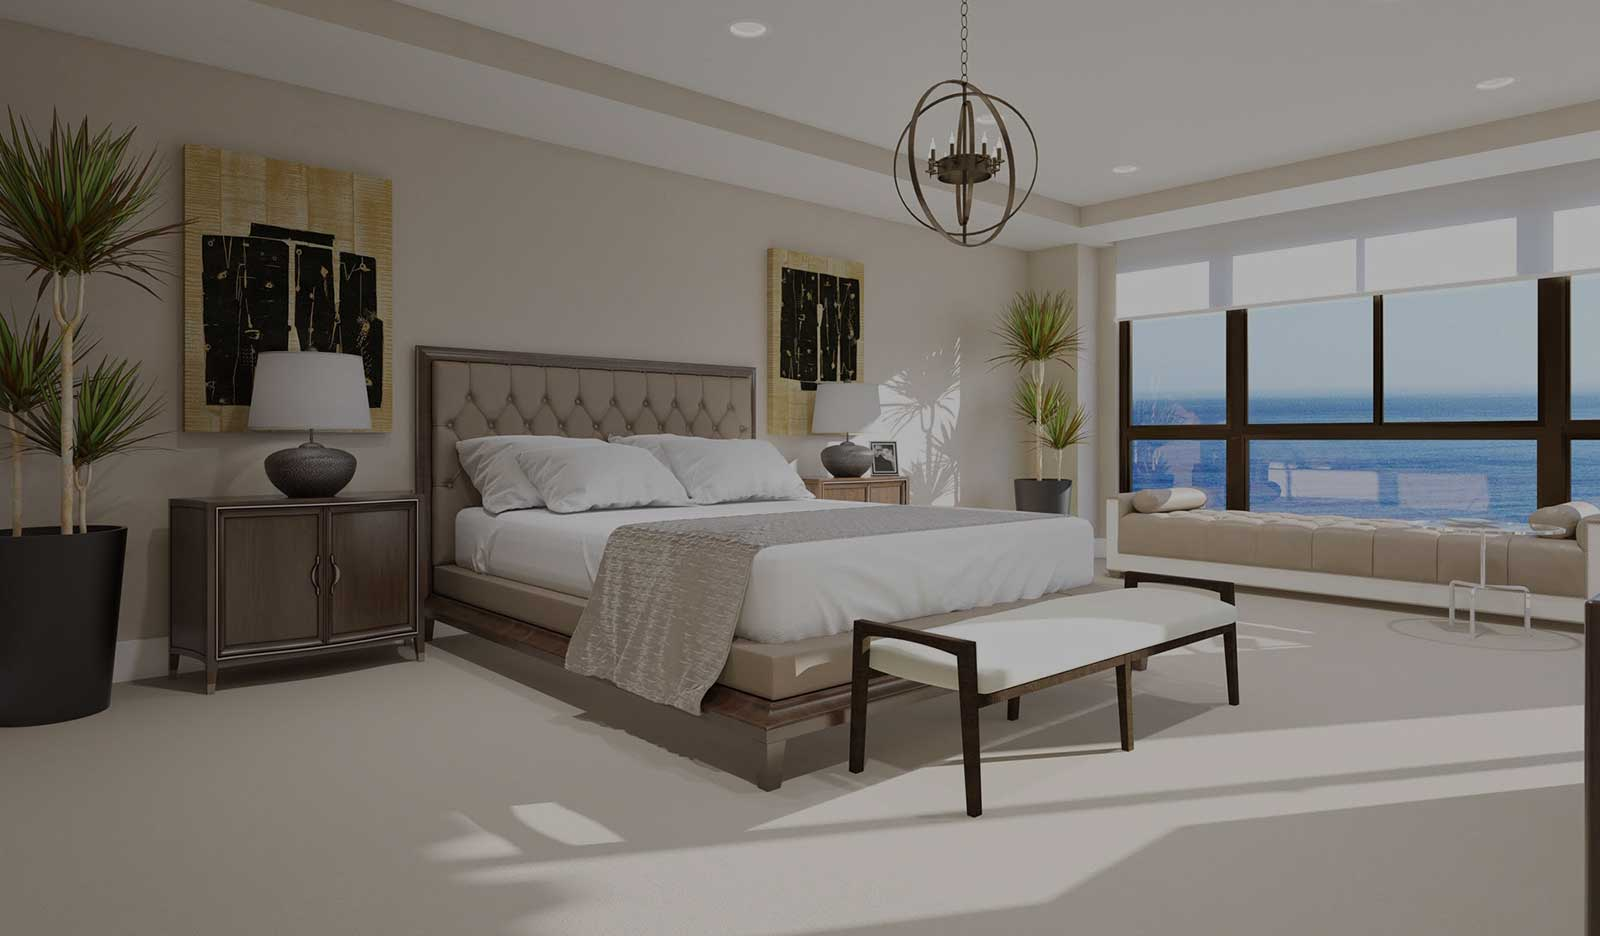 los angeles home - master bedroom with large windows